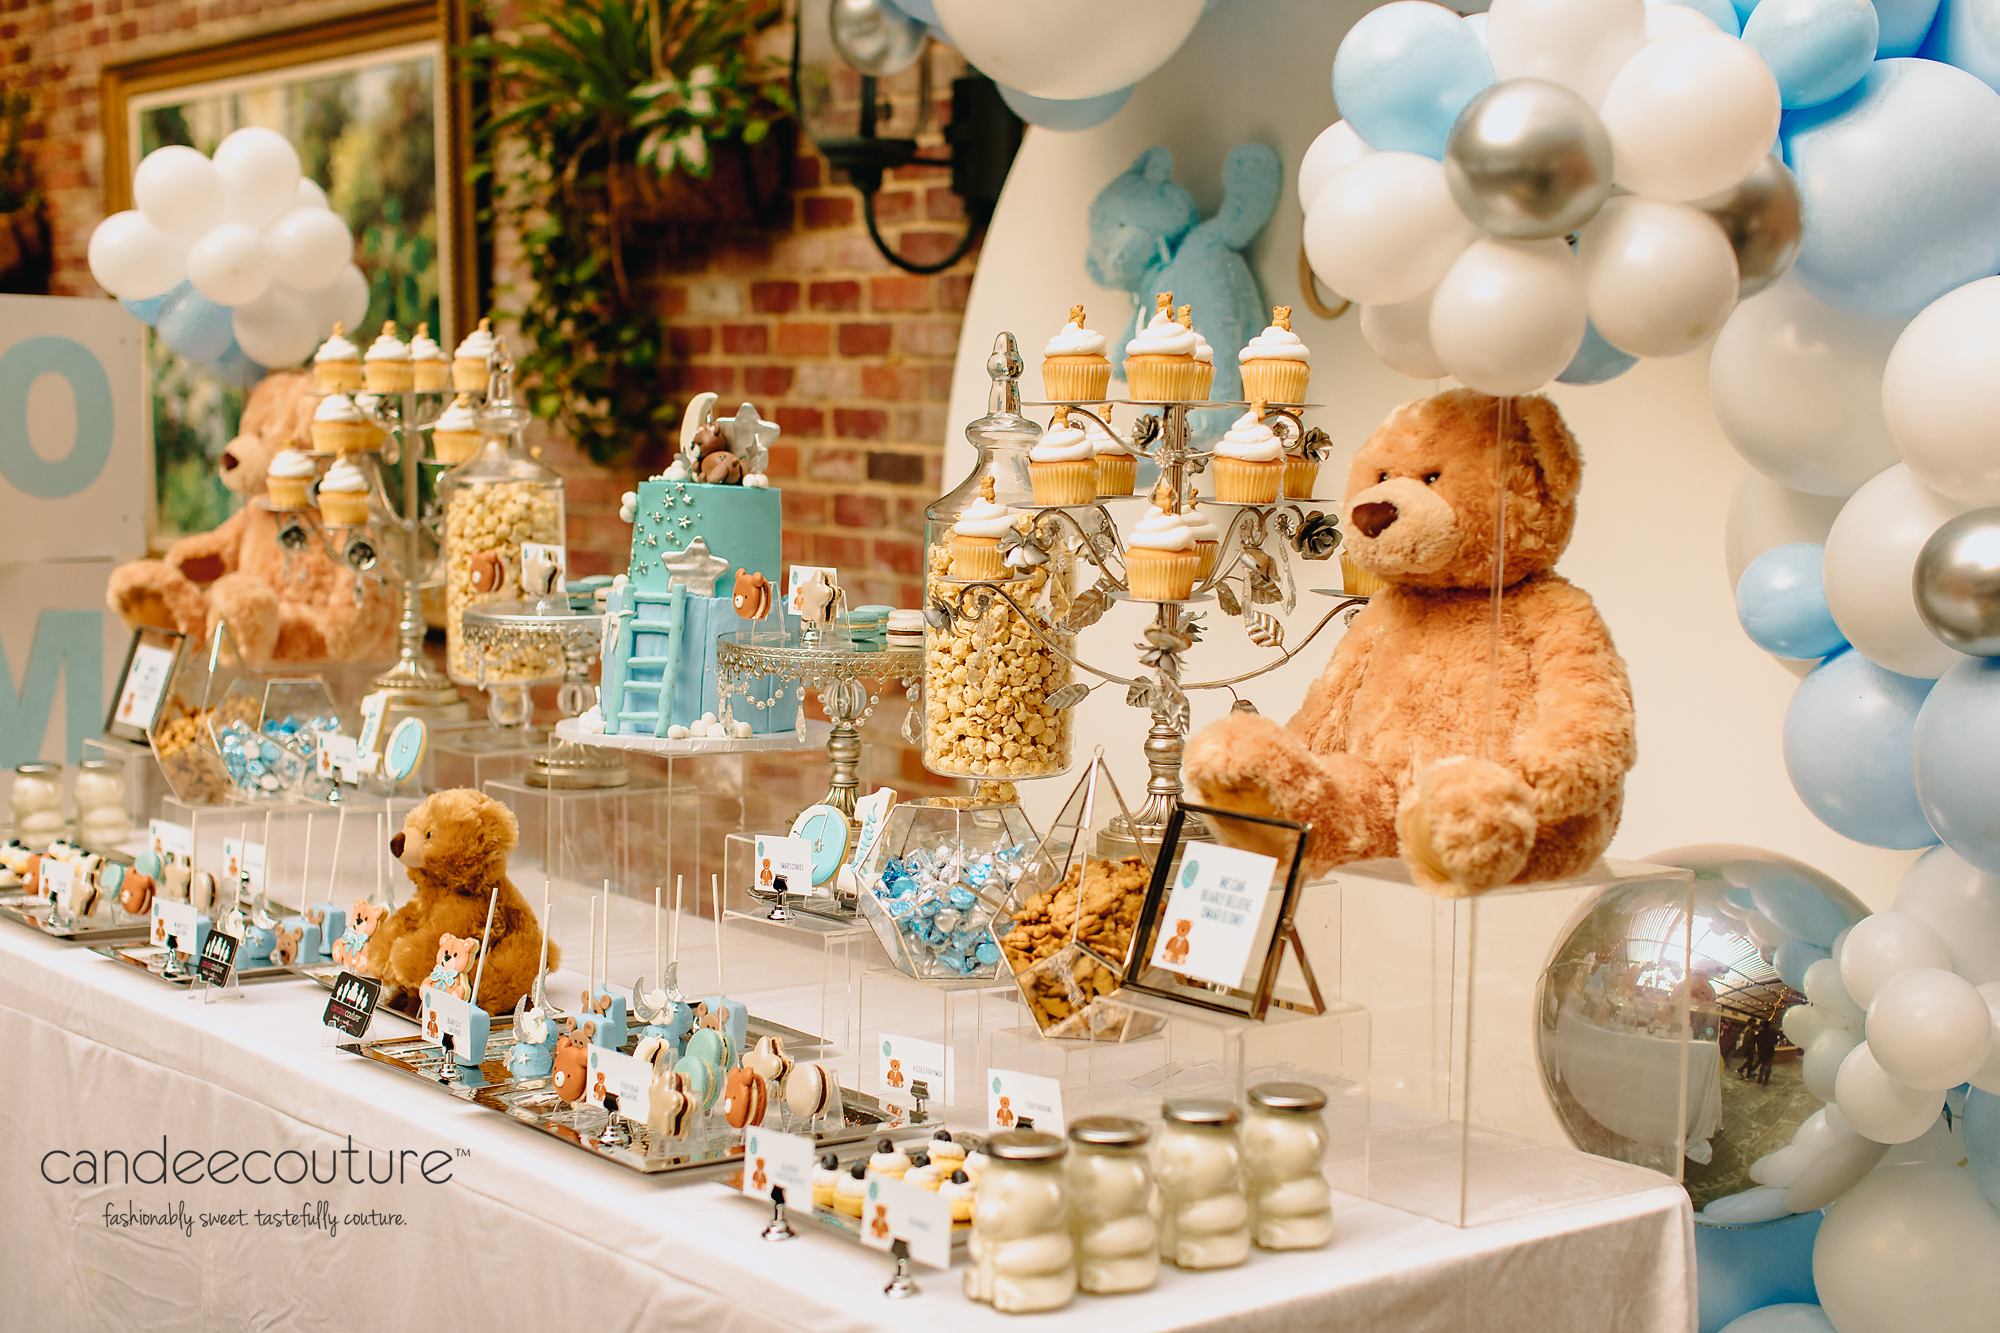 teddy bear dessert Table, sweets, Teddy Bear Theme, Teddy Bear, Teddy Theme, Luxurious Birthday Party, teddy bear Dessert, birthday party Dessert, Modern Dessert, Fancy Birthday Party, Trendy Birthday Party, Dessert Table, Dessert Table, Modern Dessert Table, Luxurious Teddy Bear Dessert Table, Personalized Dessert, Dessert, Modern Sweet Table, Dallas, Modern Birthday, Modern Birthday Party